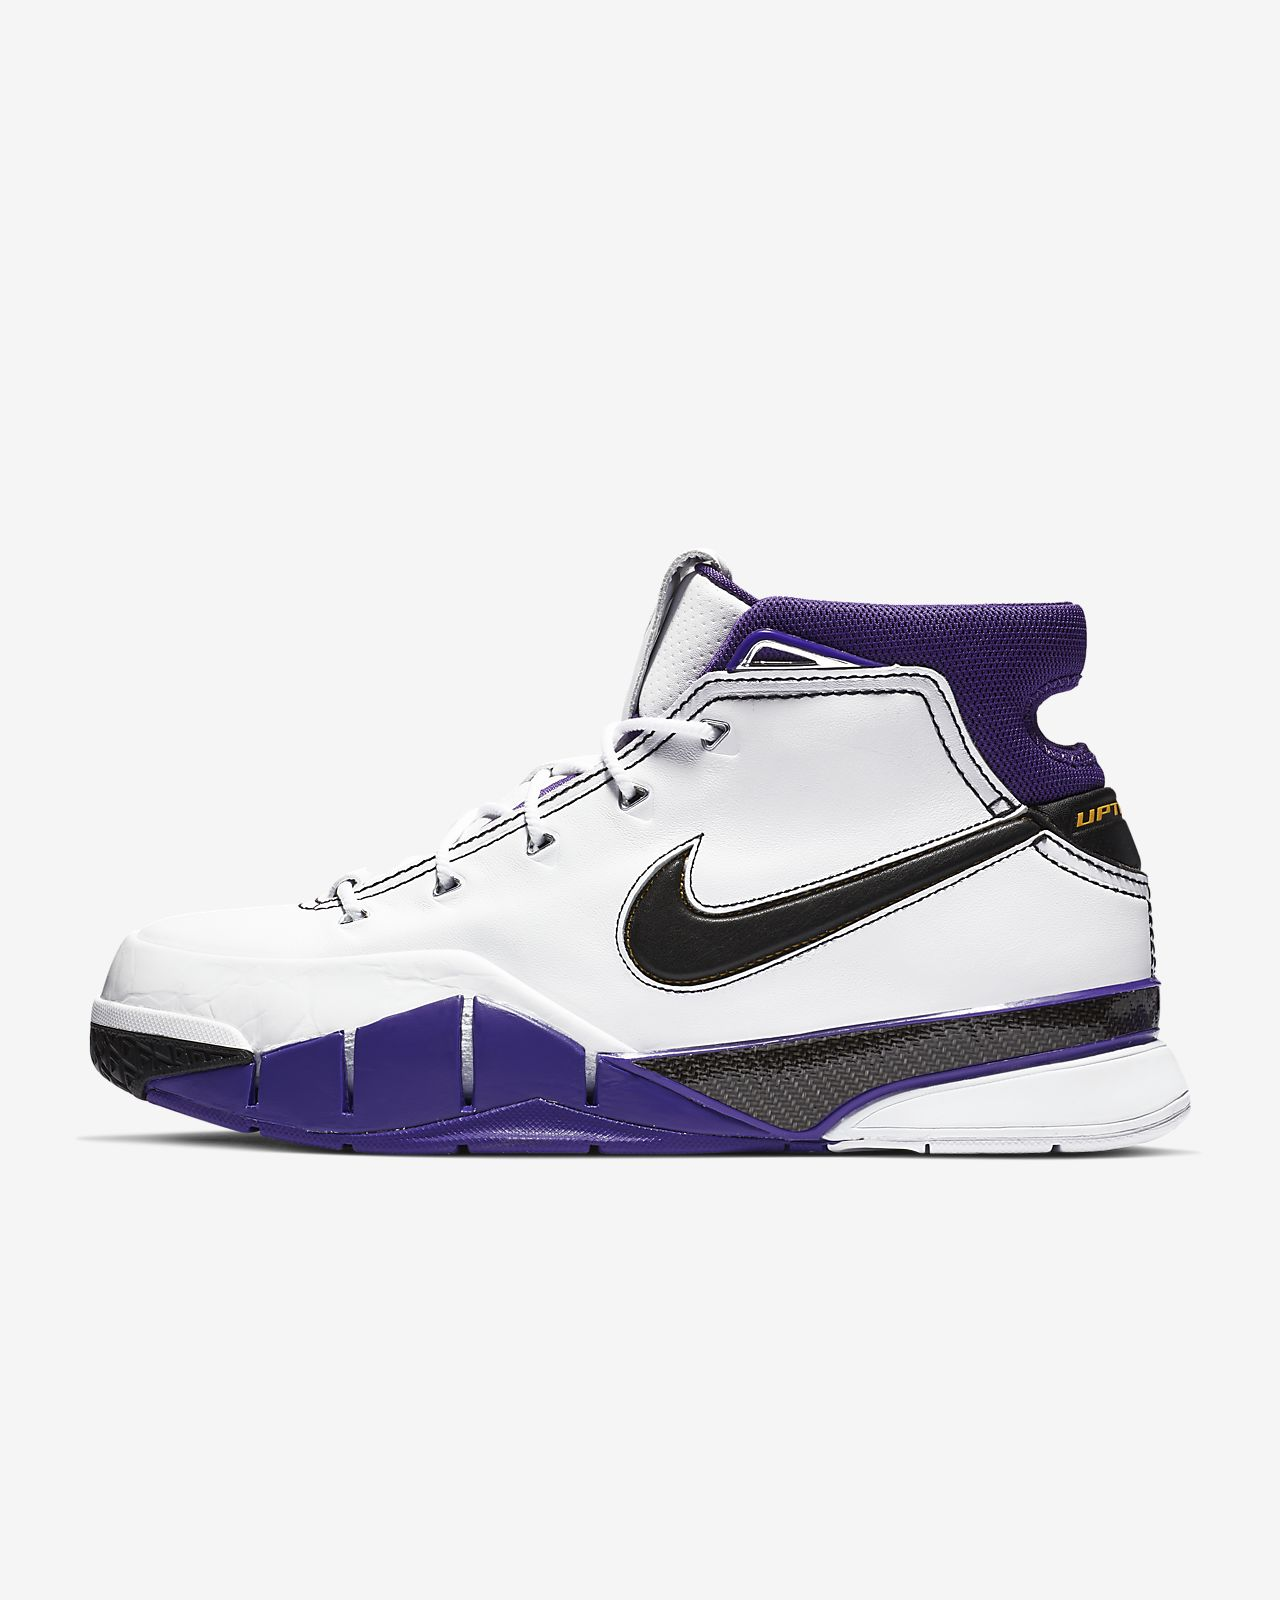 new concept 73f0e 9fcc9 ... Kobe 1 Protro Basketball Shoe